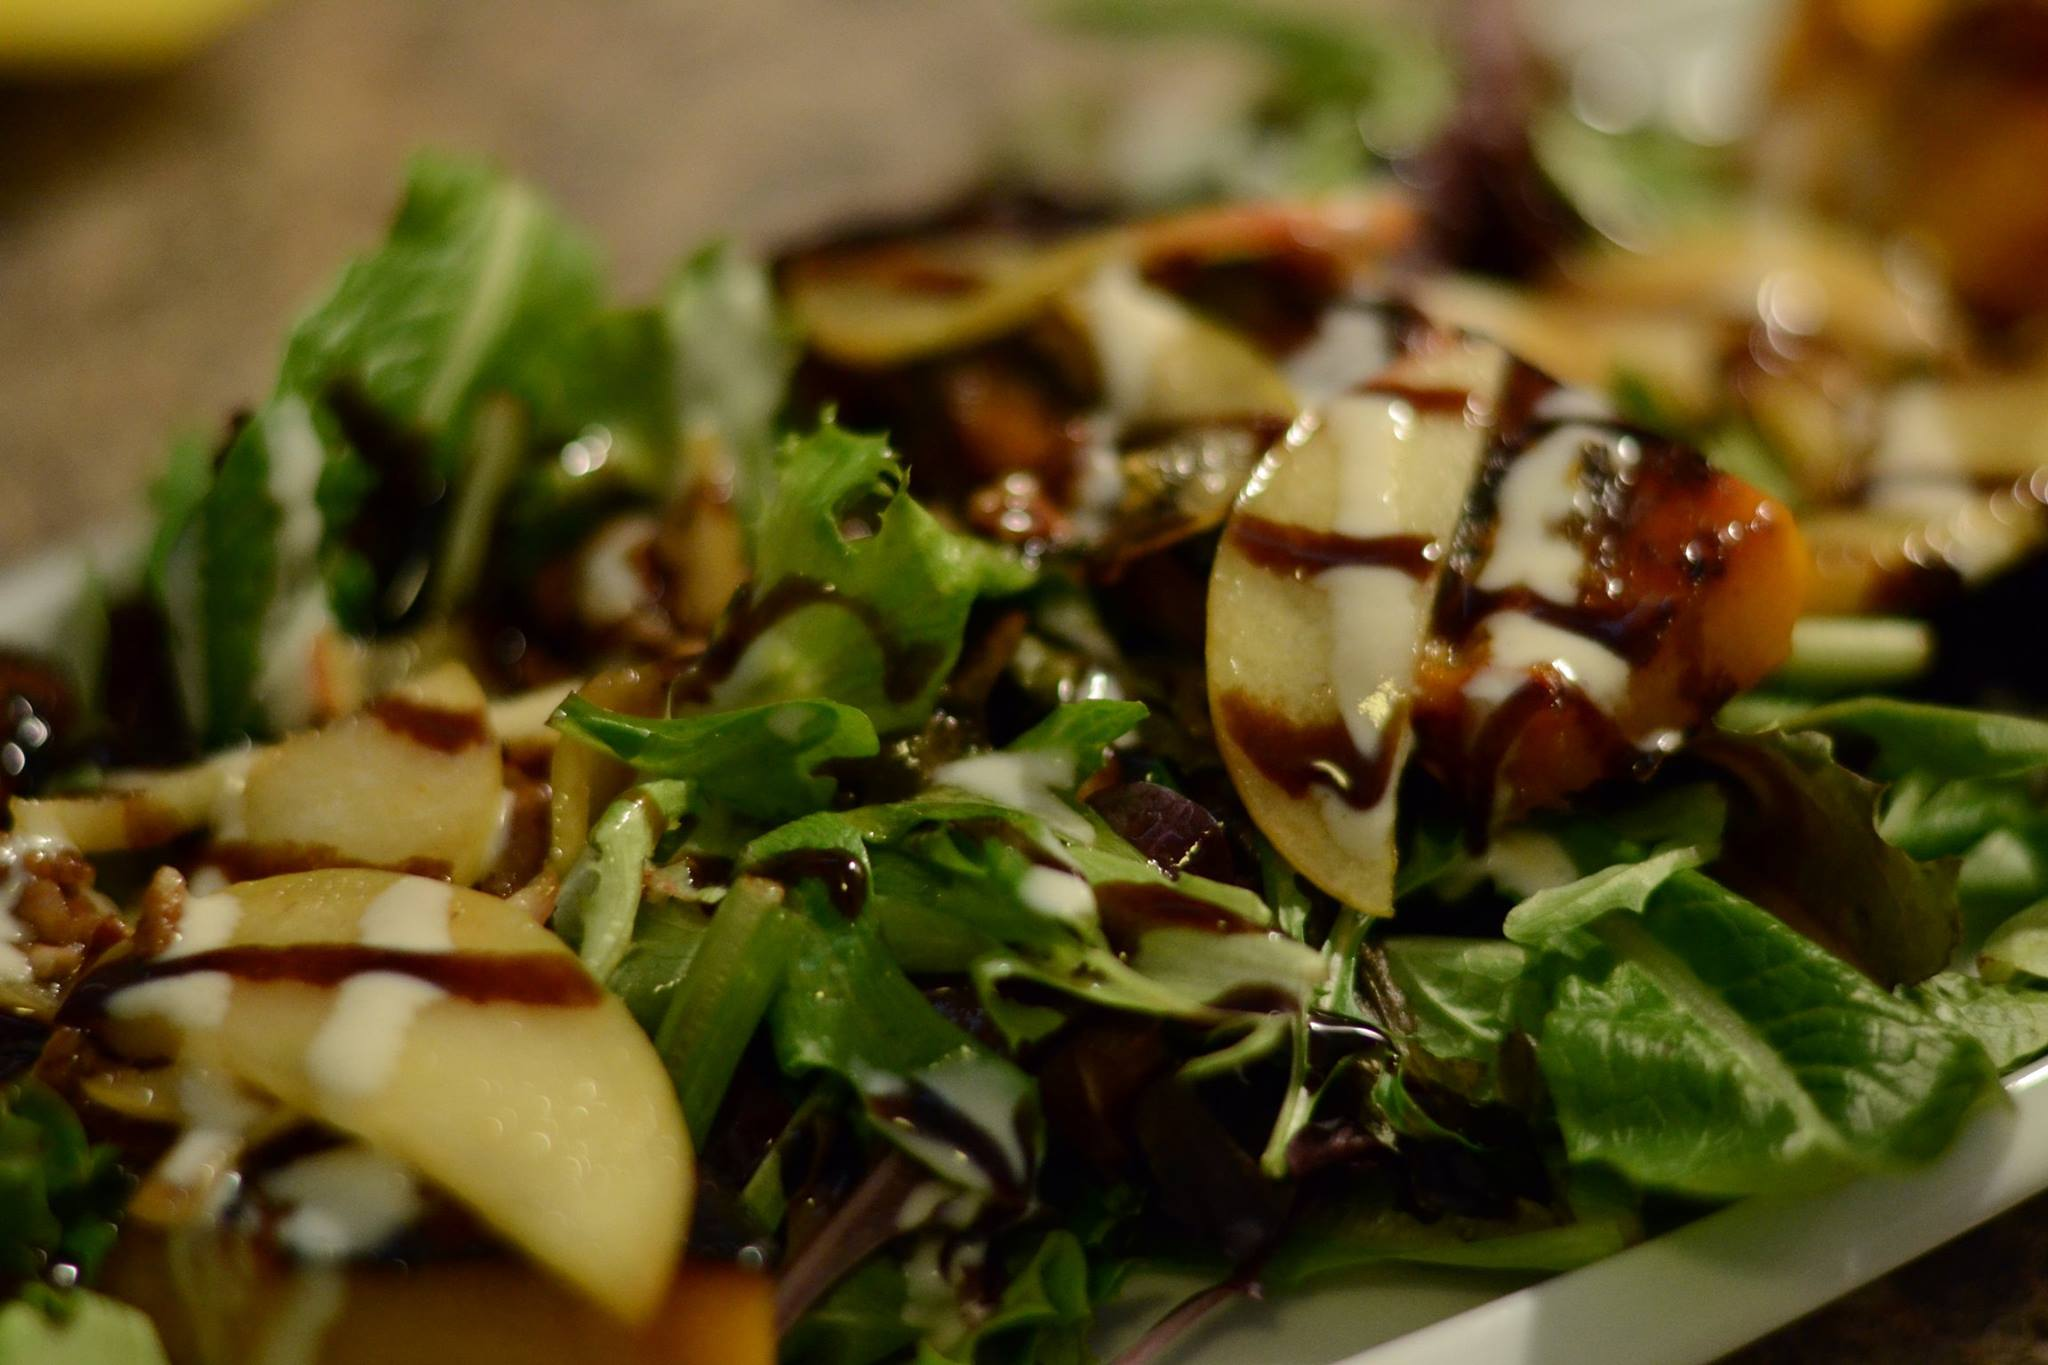 Salad with apple slices, tomatoes, balsamic drizzle